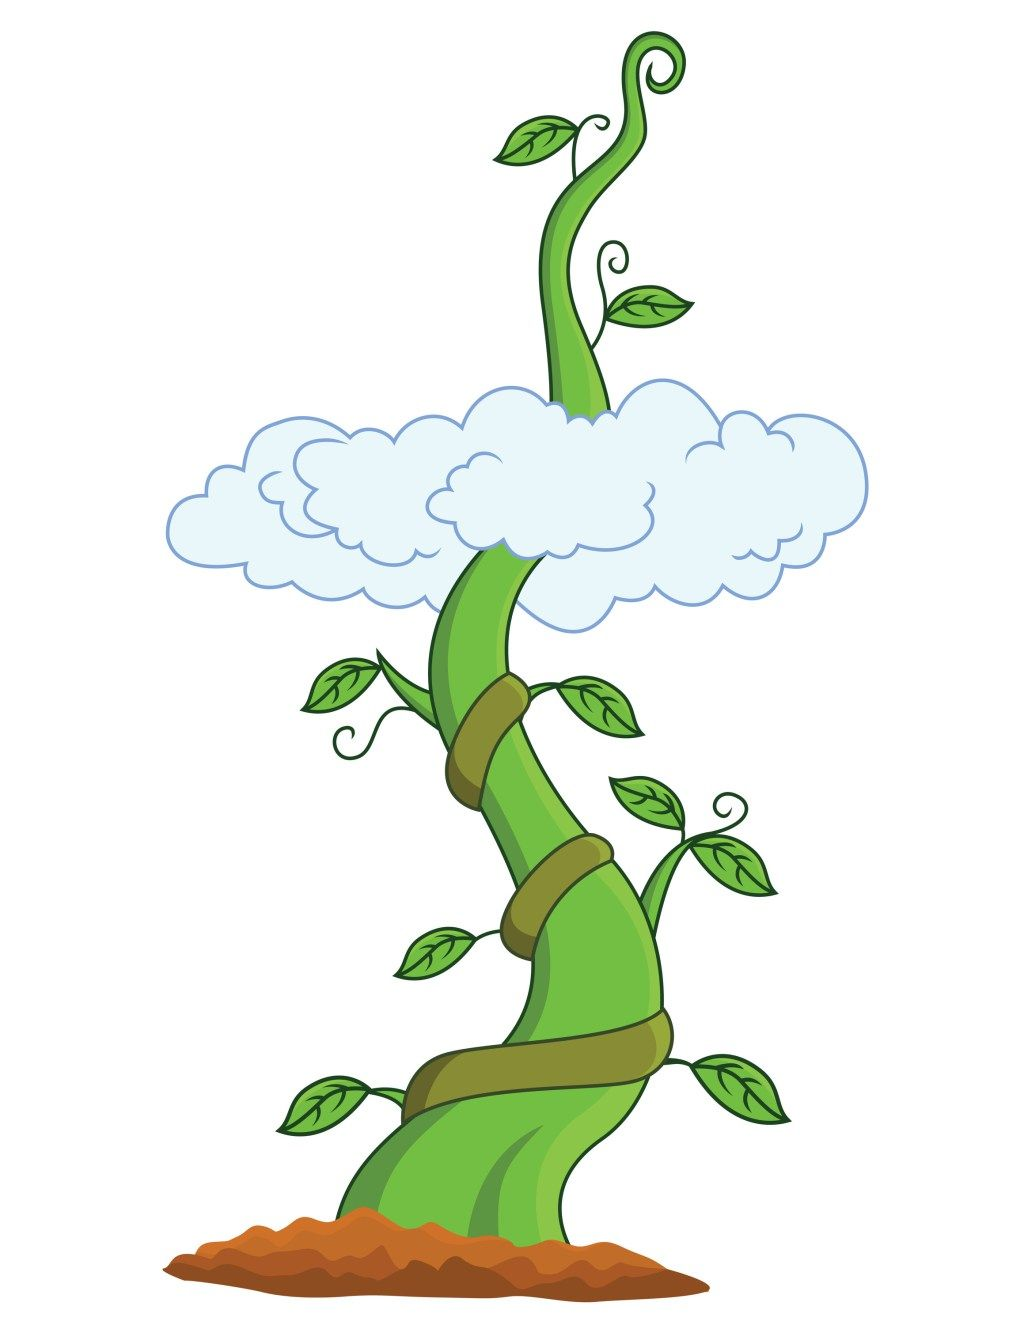 Go Up The Beanstalk With Jack And The Giant